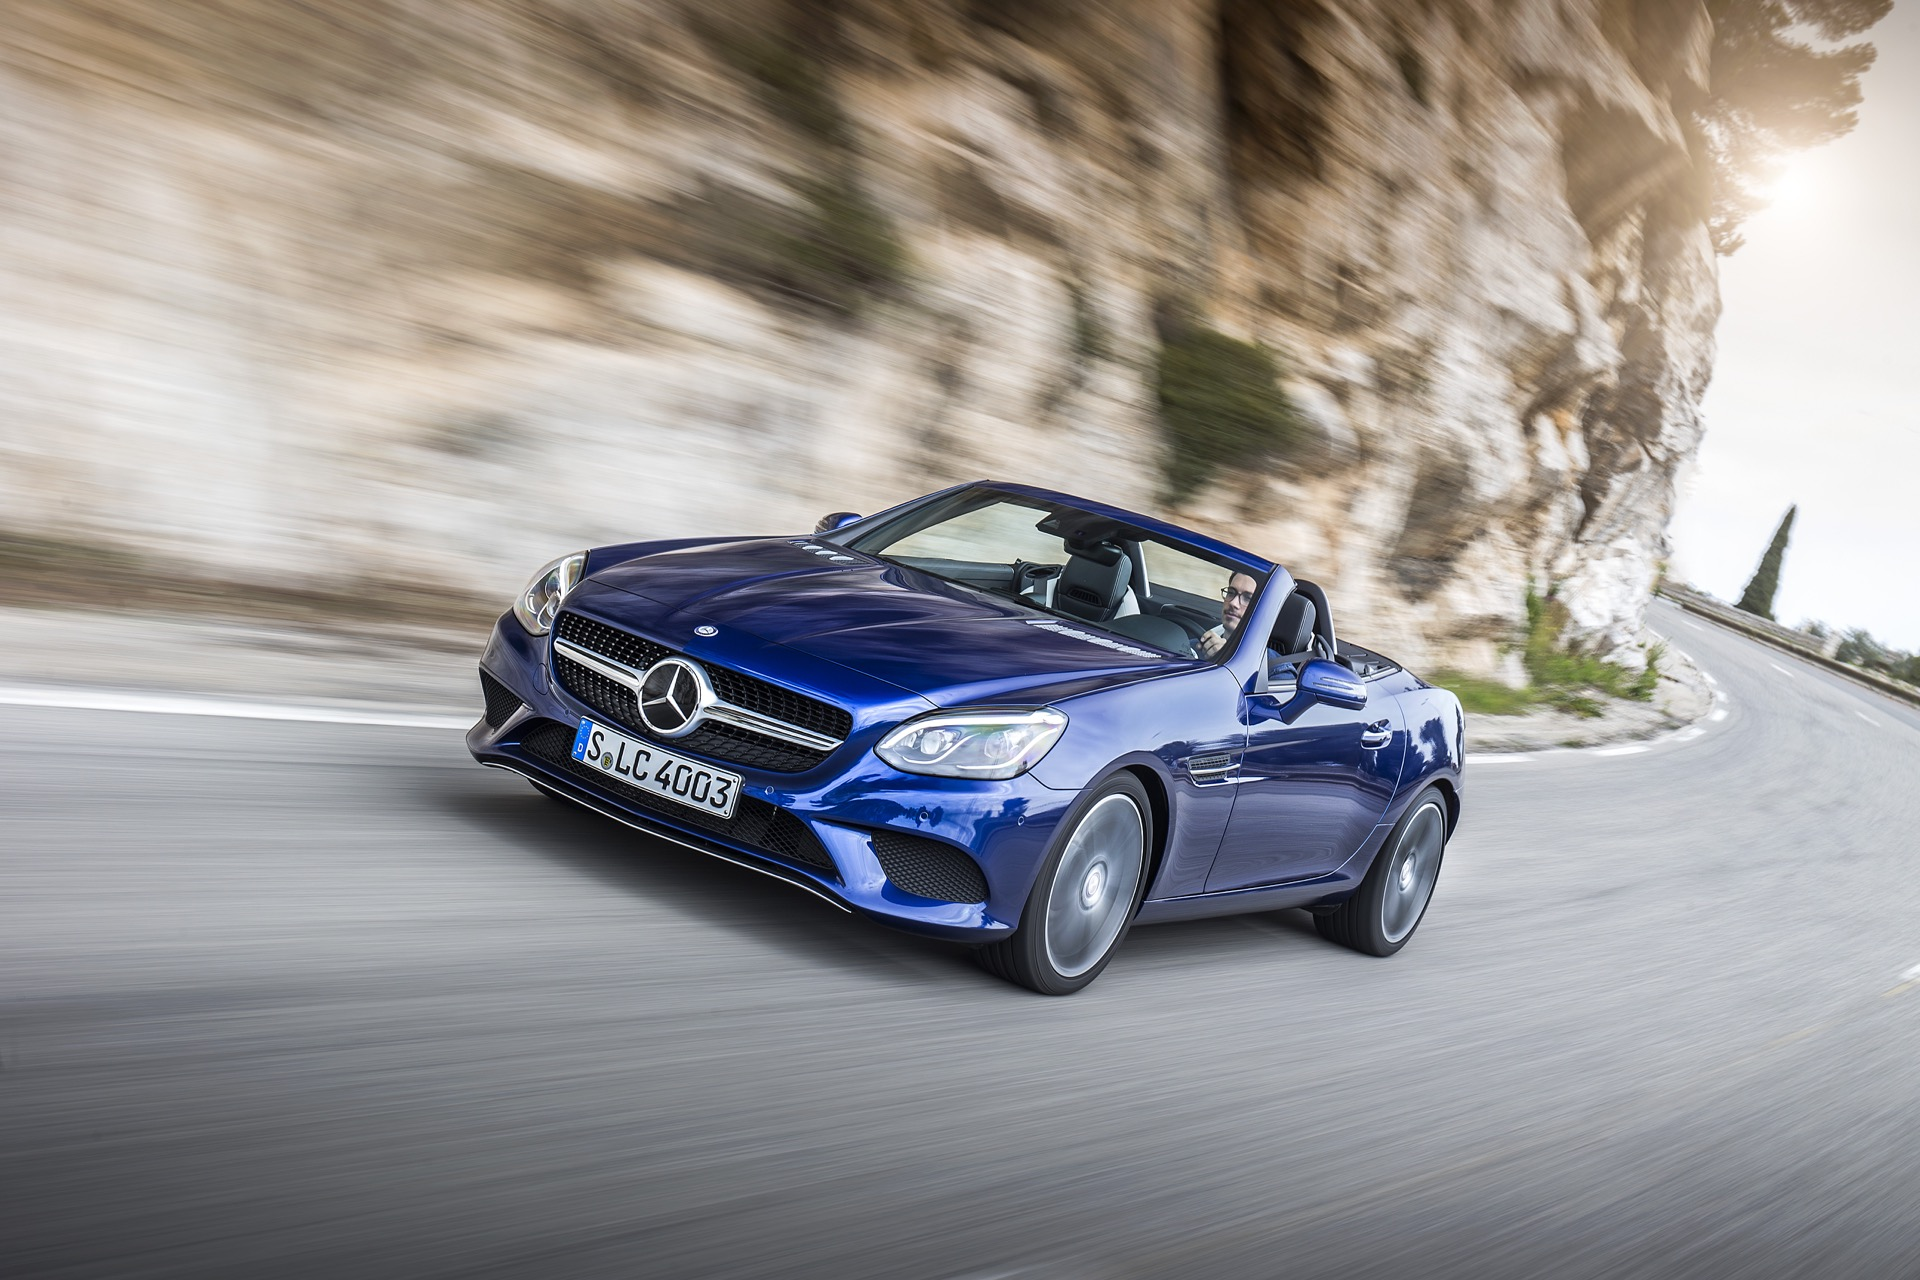 2017 Mercedes Benz Slc Class Features Review The Car Connection